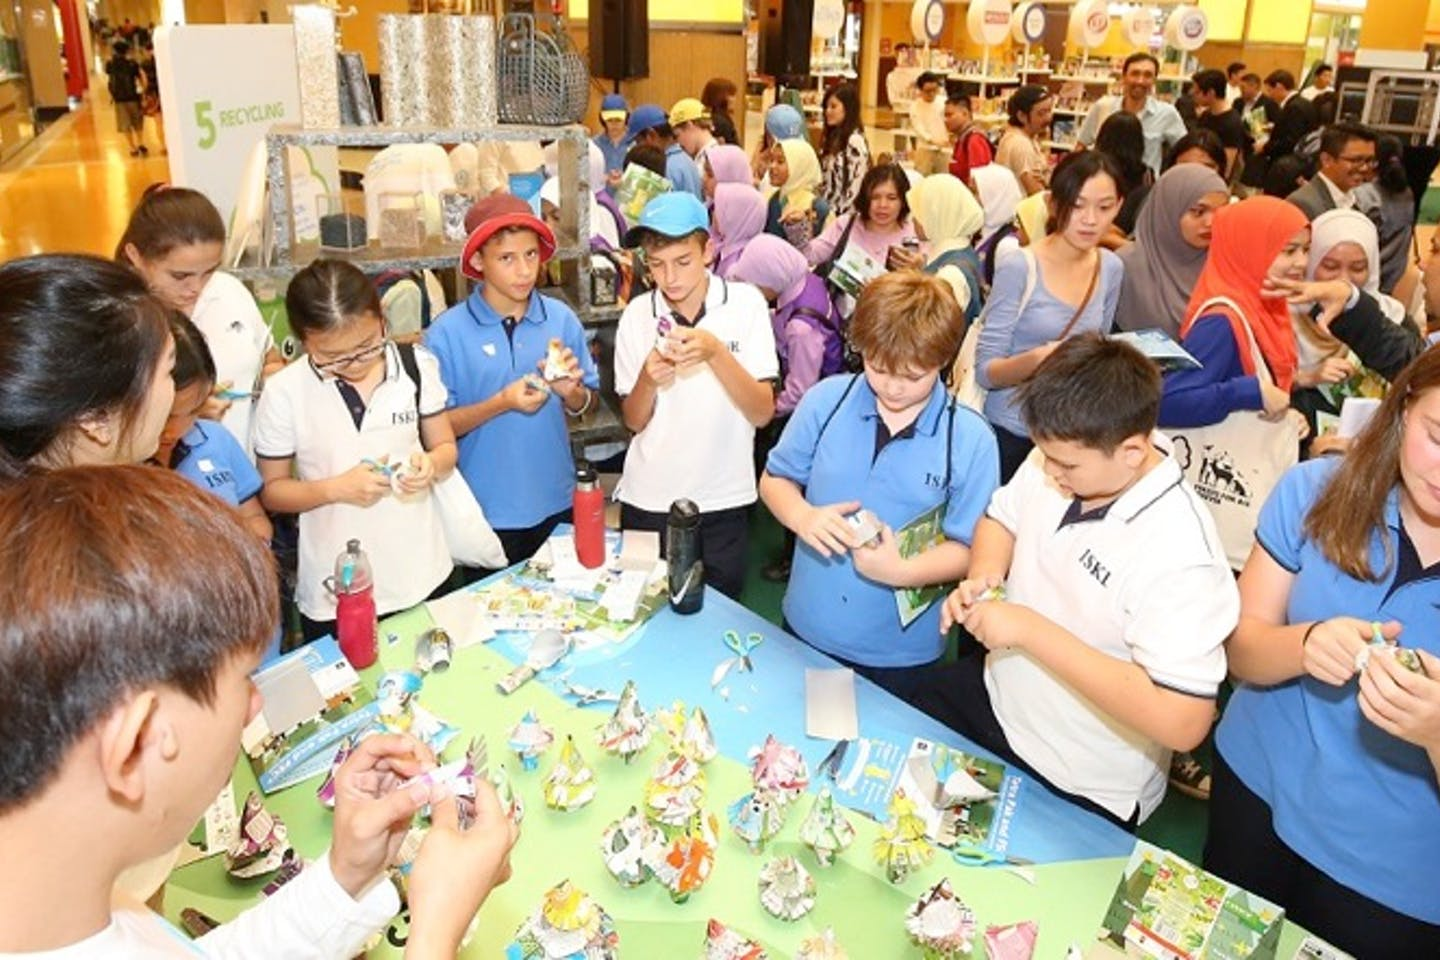 Students from the International School of Kuala Lumpur learning how to turn used cartons into decorative trees at Sunway Pyramid on 11 November 2016.